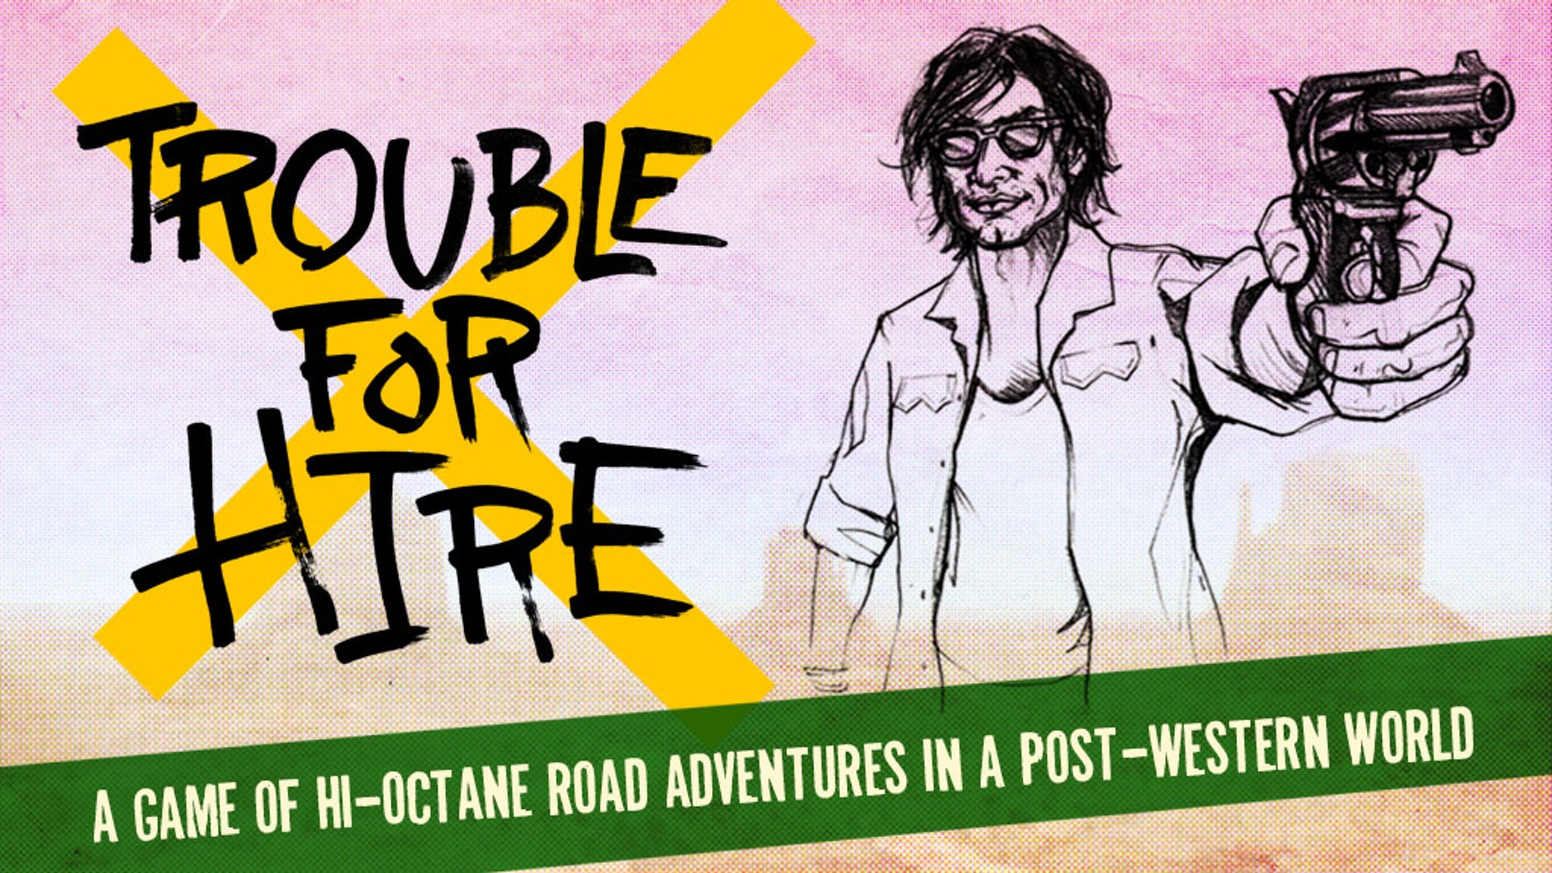 You and your friends play to tell serial full-throttle adventure stories of a road warrior cruising a stylized post-Western world.